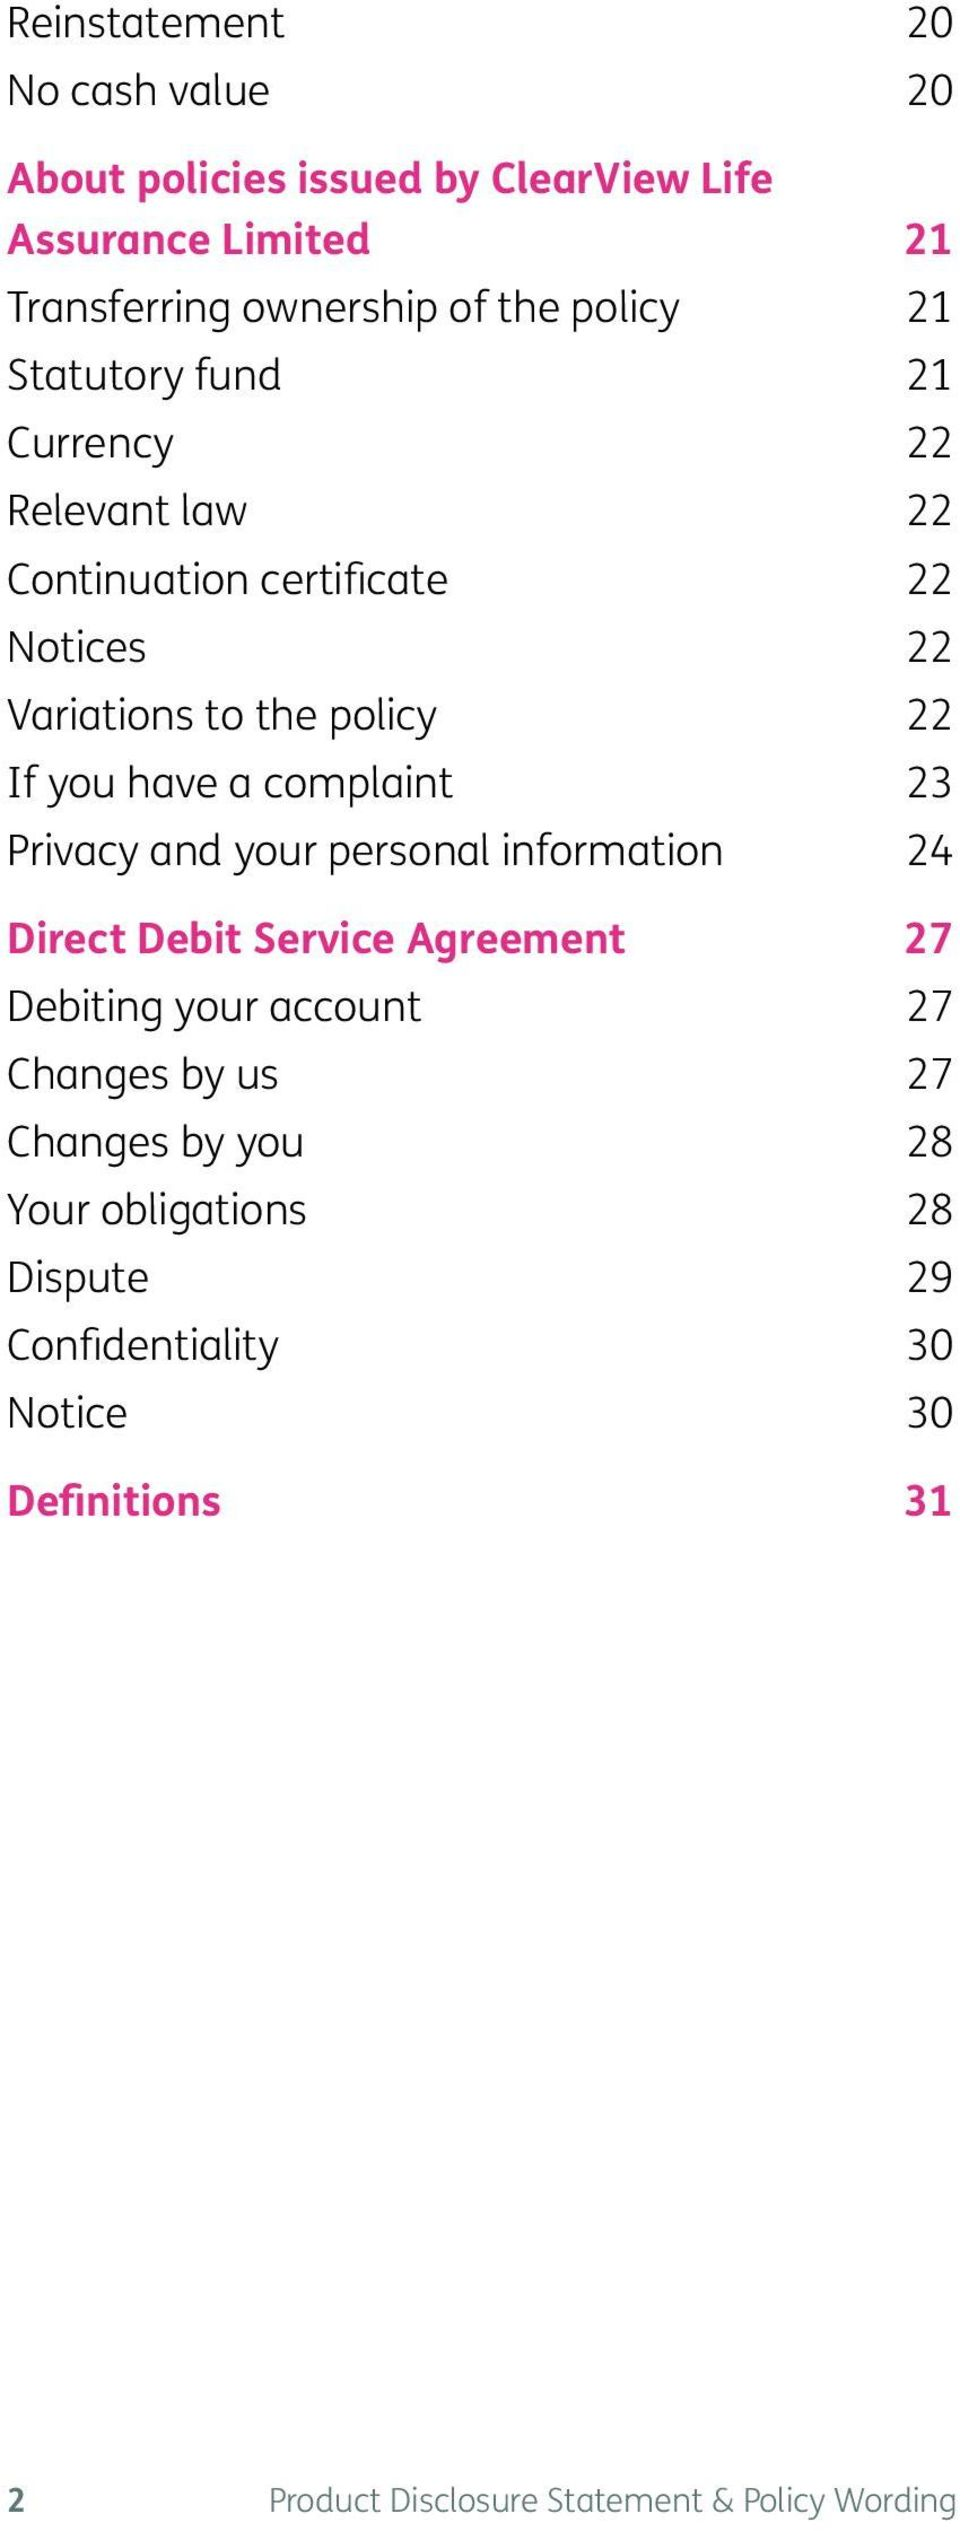 complaint 23 Privacy and your personal information 24 Direct Debit Service Agreement 27 Debiting your account 27 Changes by us 27